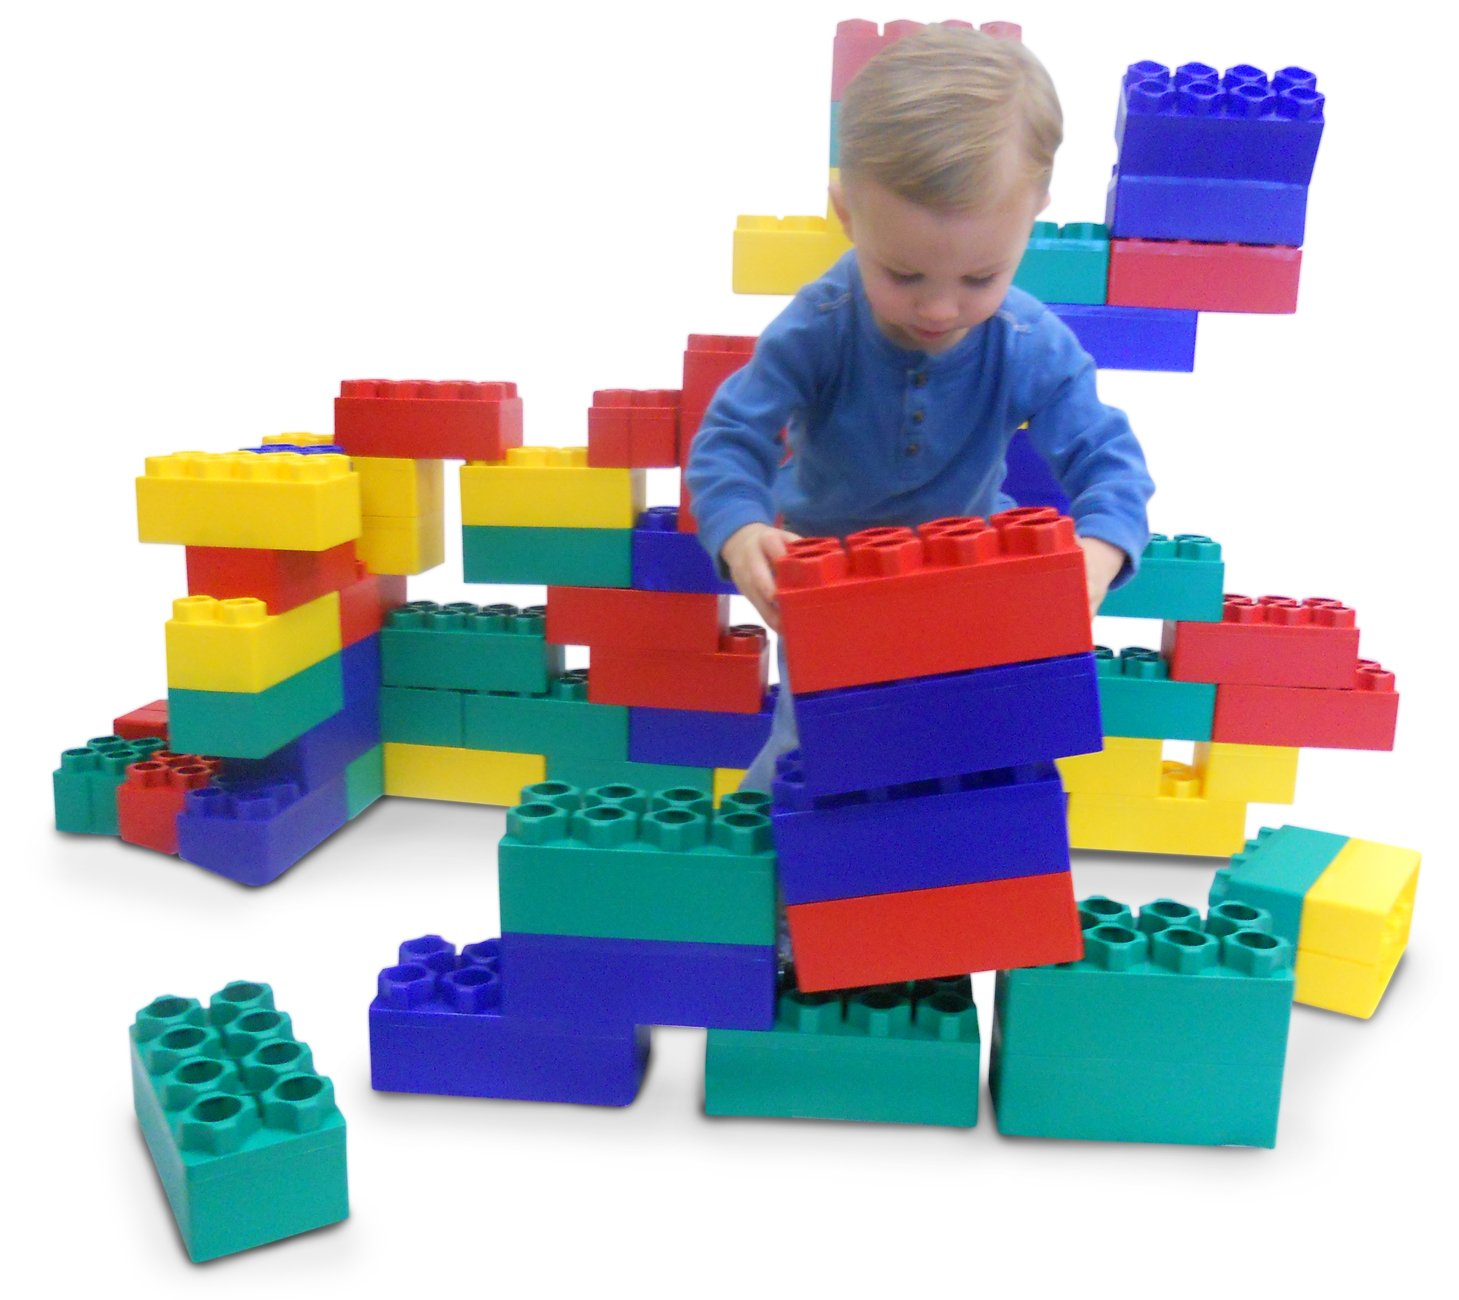 Kids Adventure Jumbo Blocks 24 piece - Kids Krate Toys